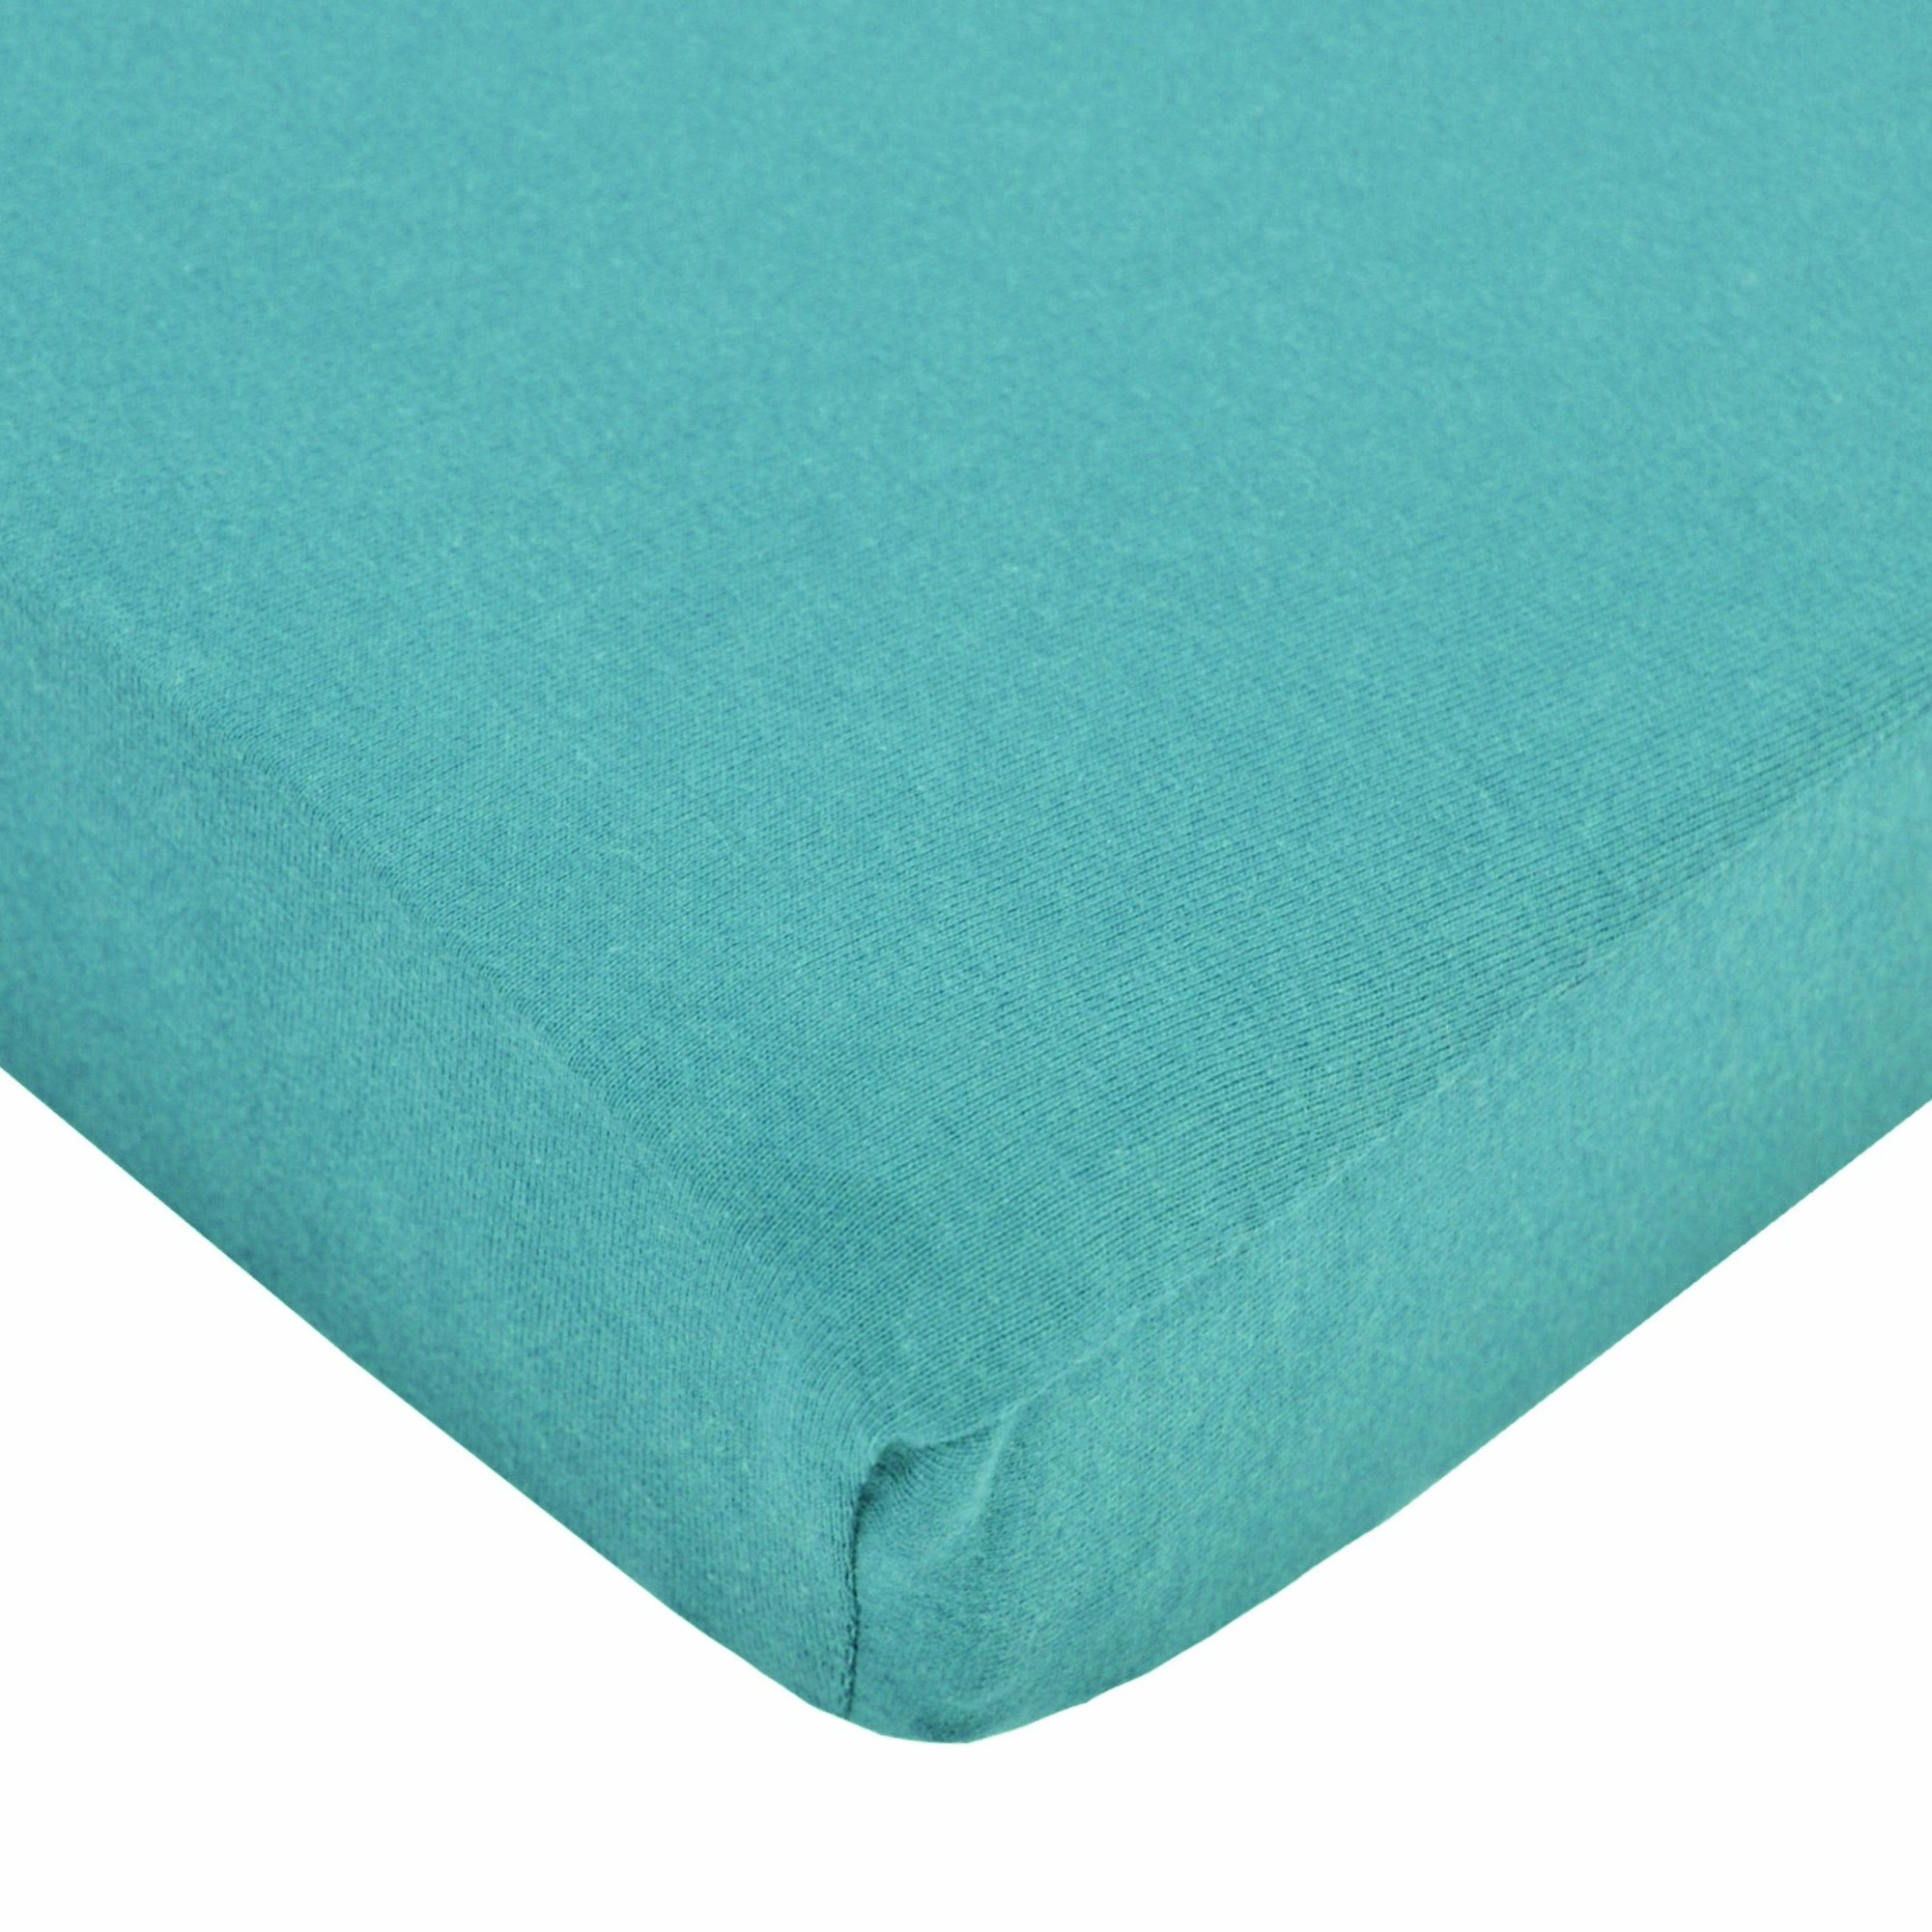 """TL Care Supreme 100% Natural Cotton Jersey Knit Fitted Crib Sheet for Standard Crib and Toddler Mattresses, Turquoise, 28"""" x 52"""", Soft Breathable, for Boys and Girls"""